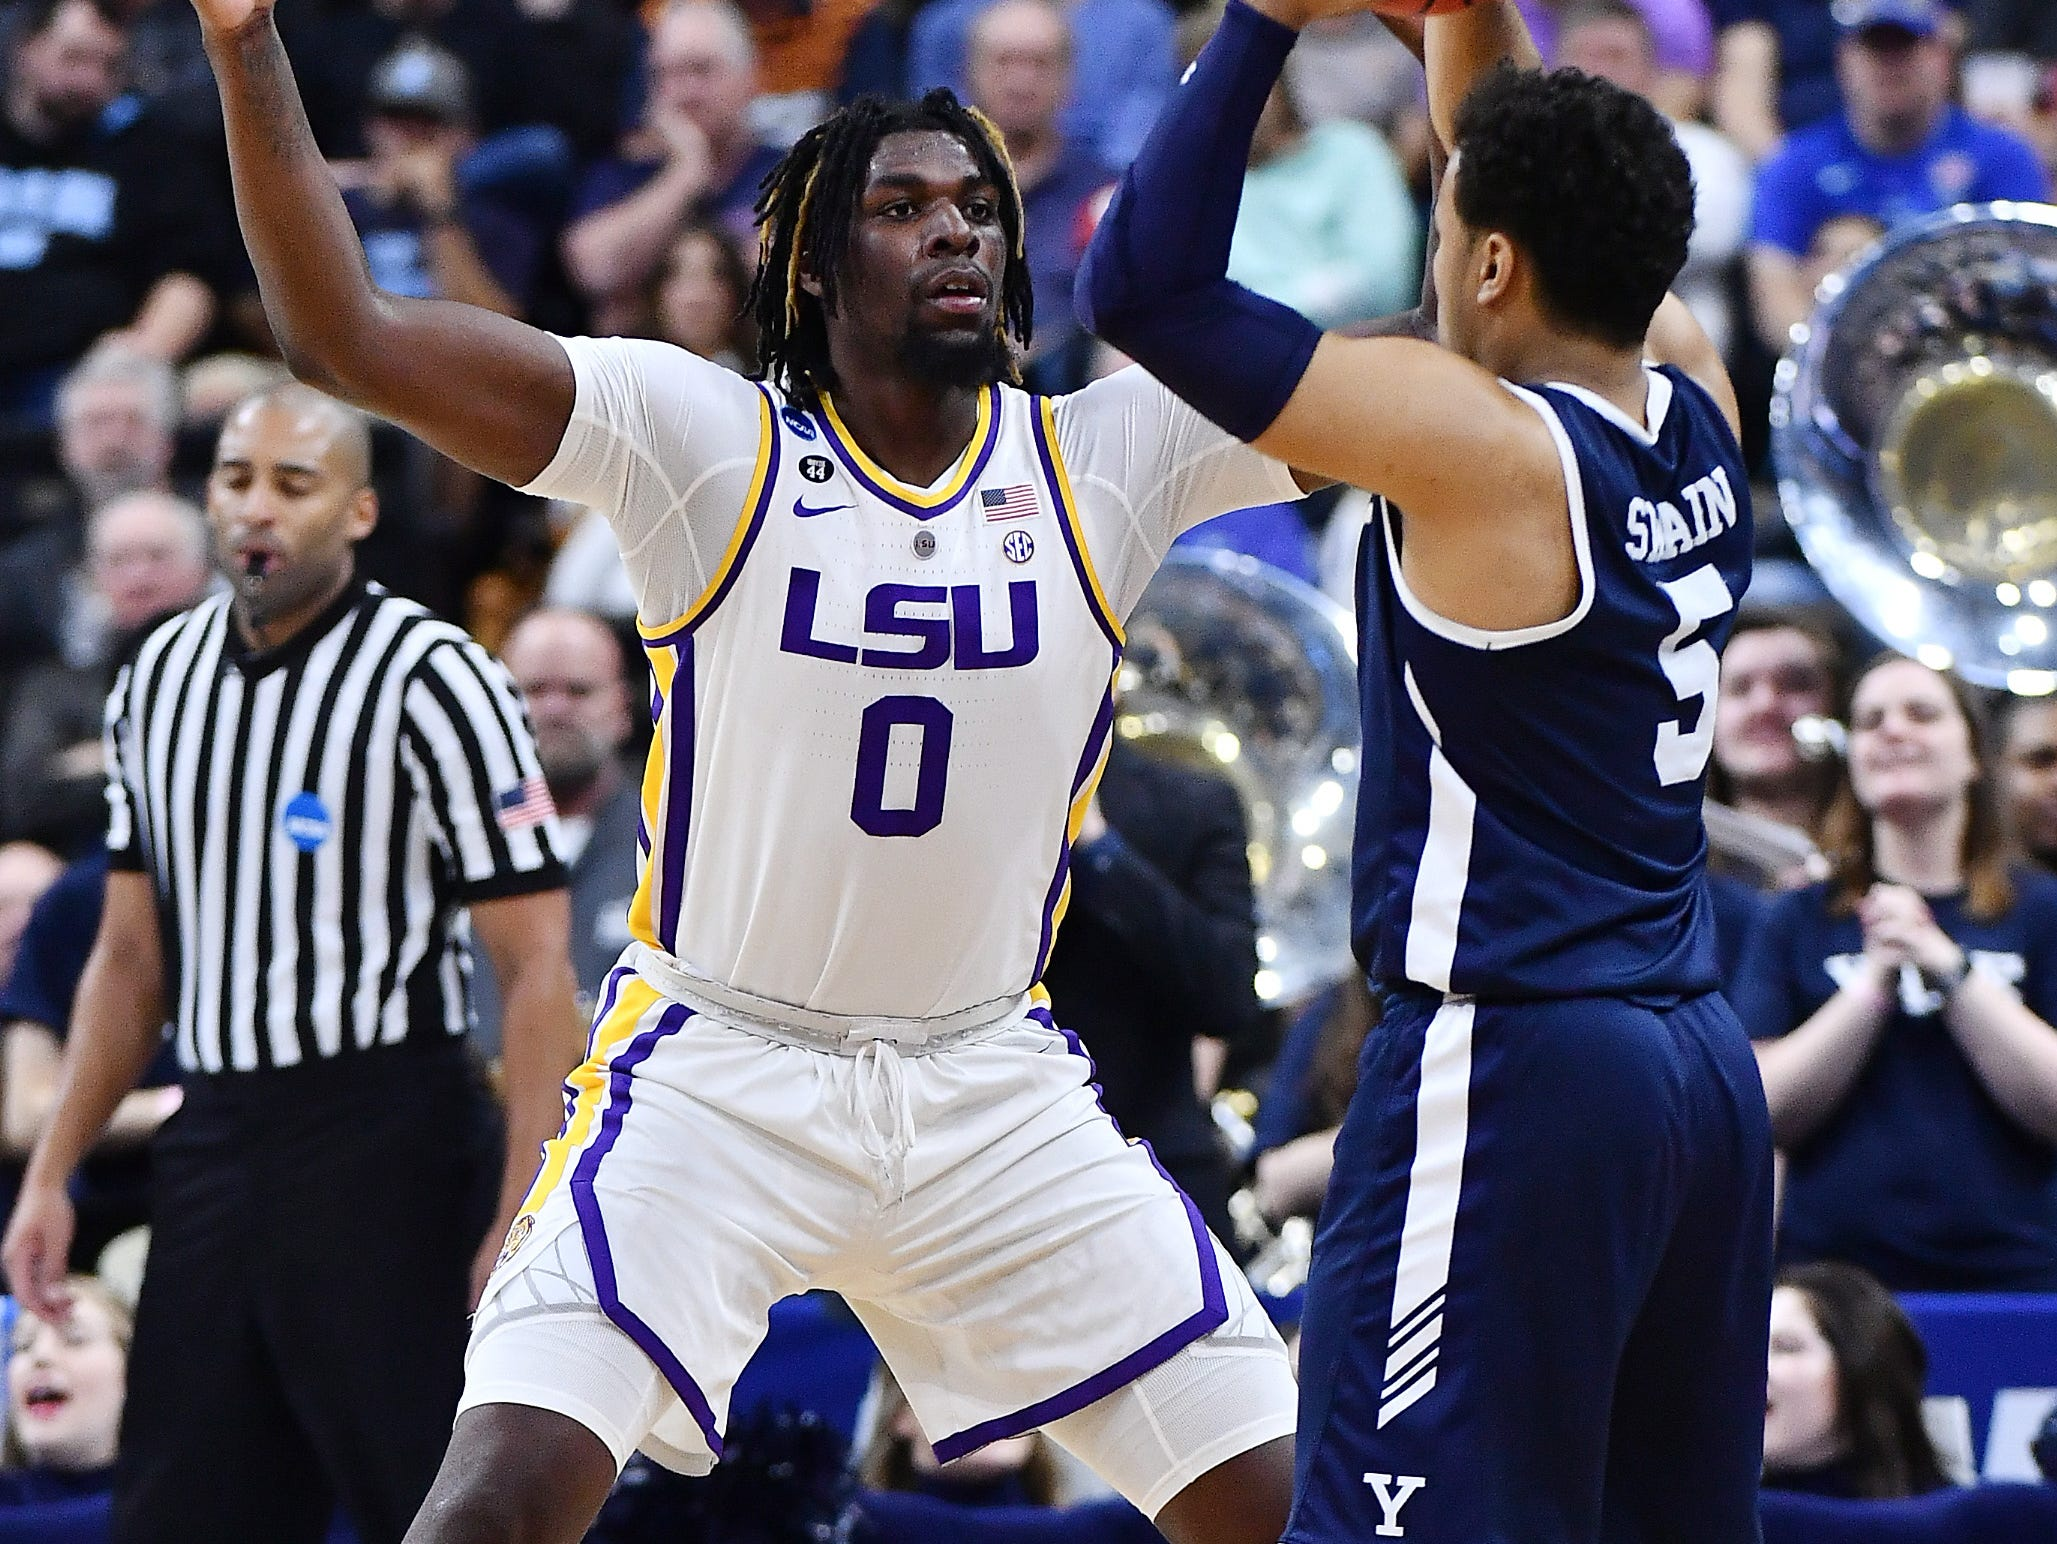 Mar 21, 2019; Jacksonville, FL, USA; LSU Tigers forward Naz Reid (0) pressures Yale Bulldogs guard Azar Swain (5) during the second half in the first round of the 2019 NCAA Tournament at Jacksonville Veterans Memorial Arena. Mandatory Credit: John David Mercer-USA TODAY Sports